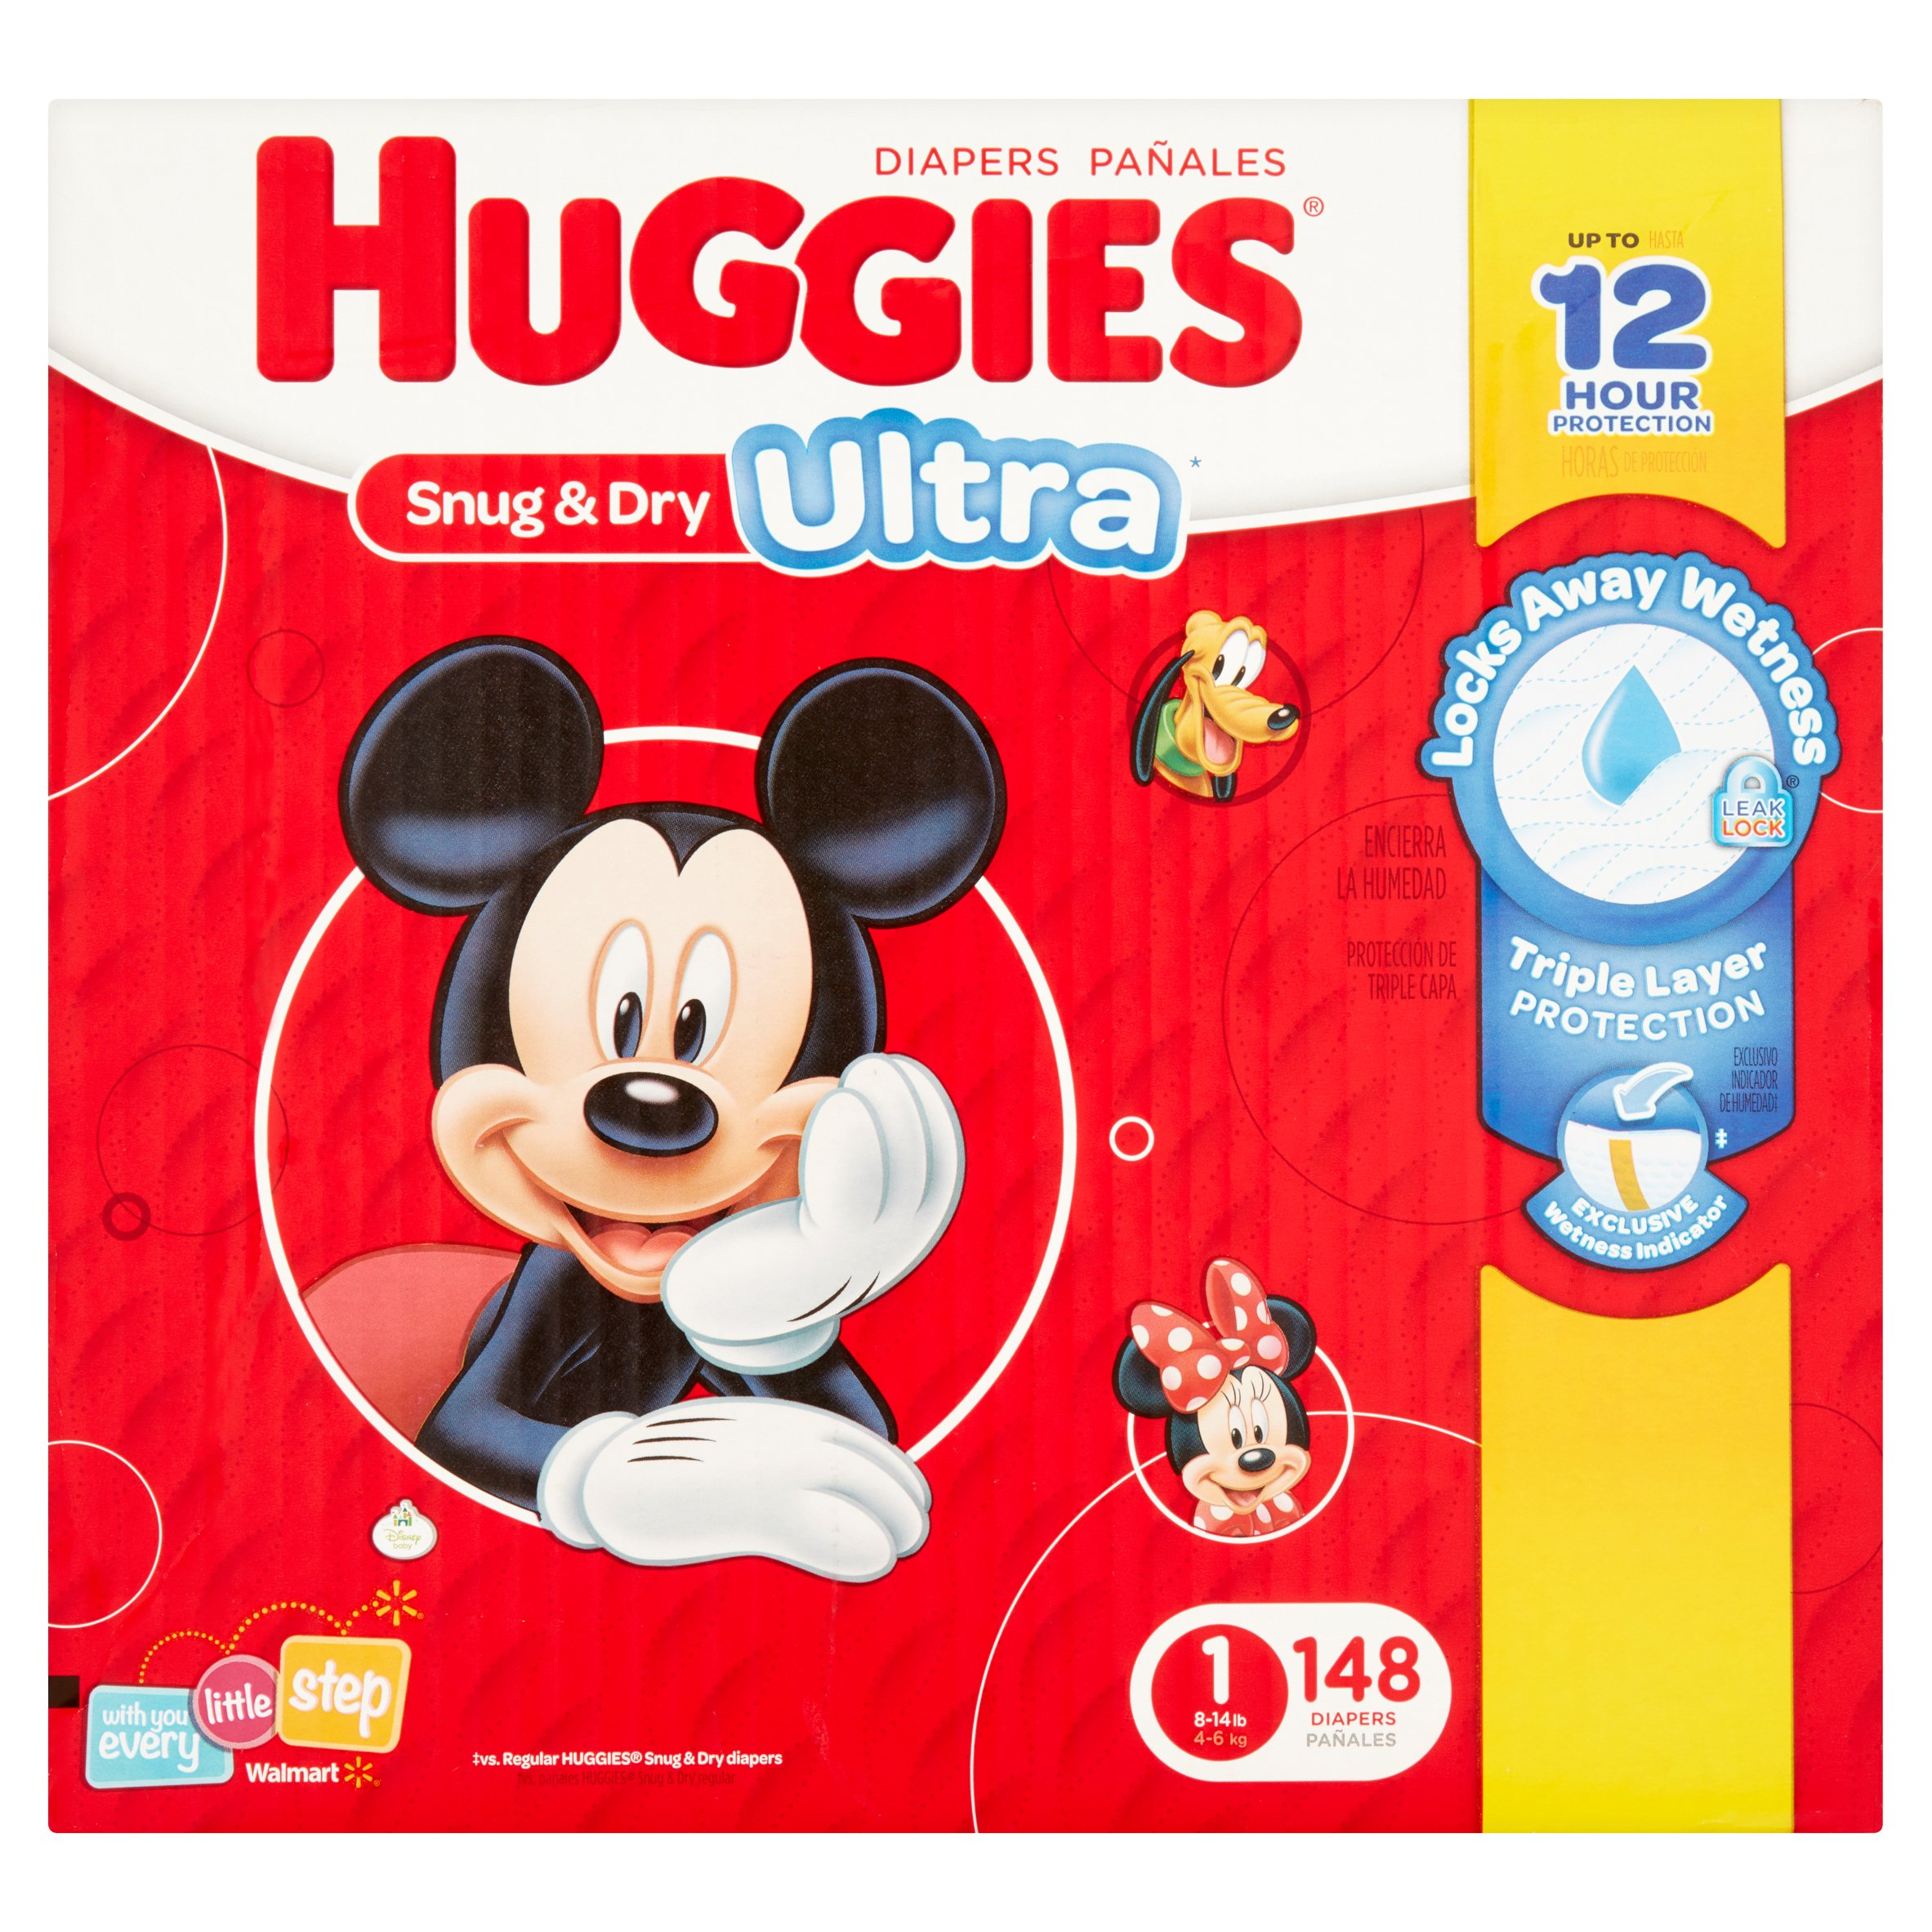 HUGGIES Snug & Dry Ultra Diapers, Size 1, 148 Diapers